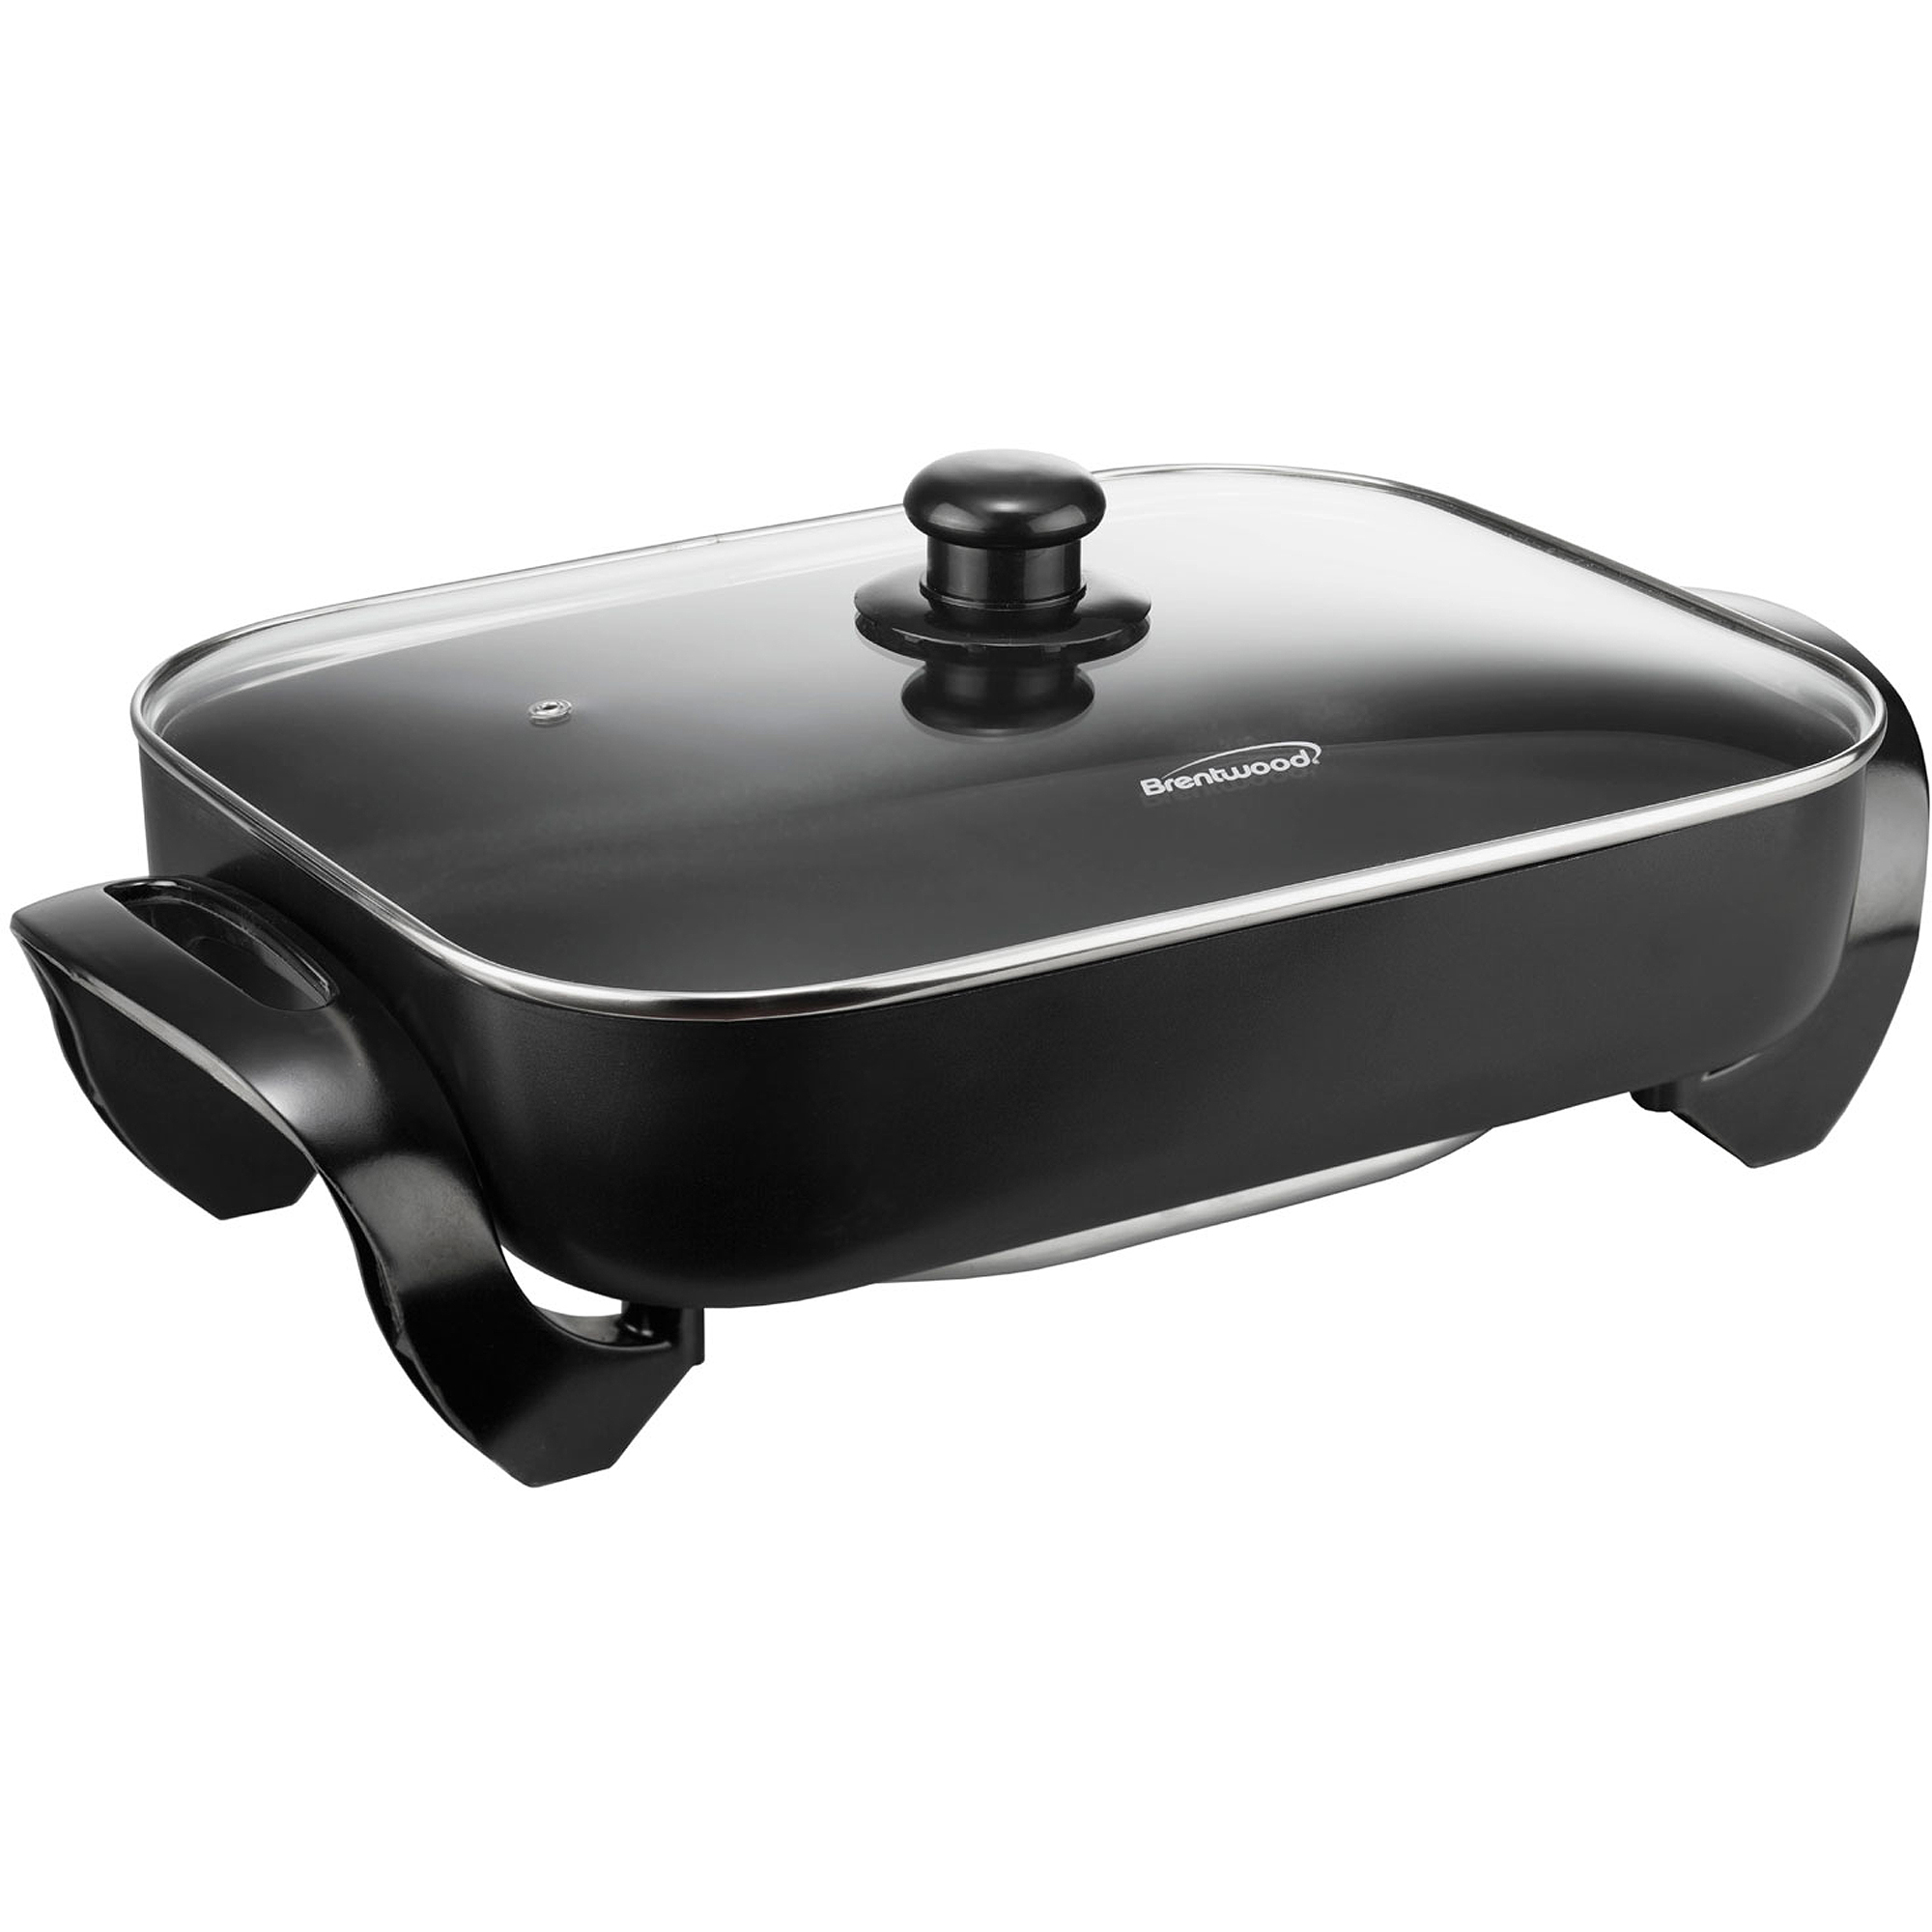 Brentwood SK-75 Electric Skillet with Glass Lid, 16""